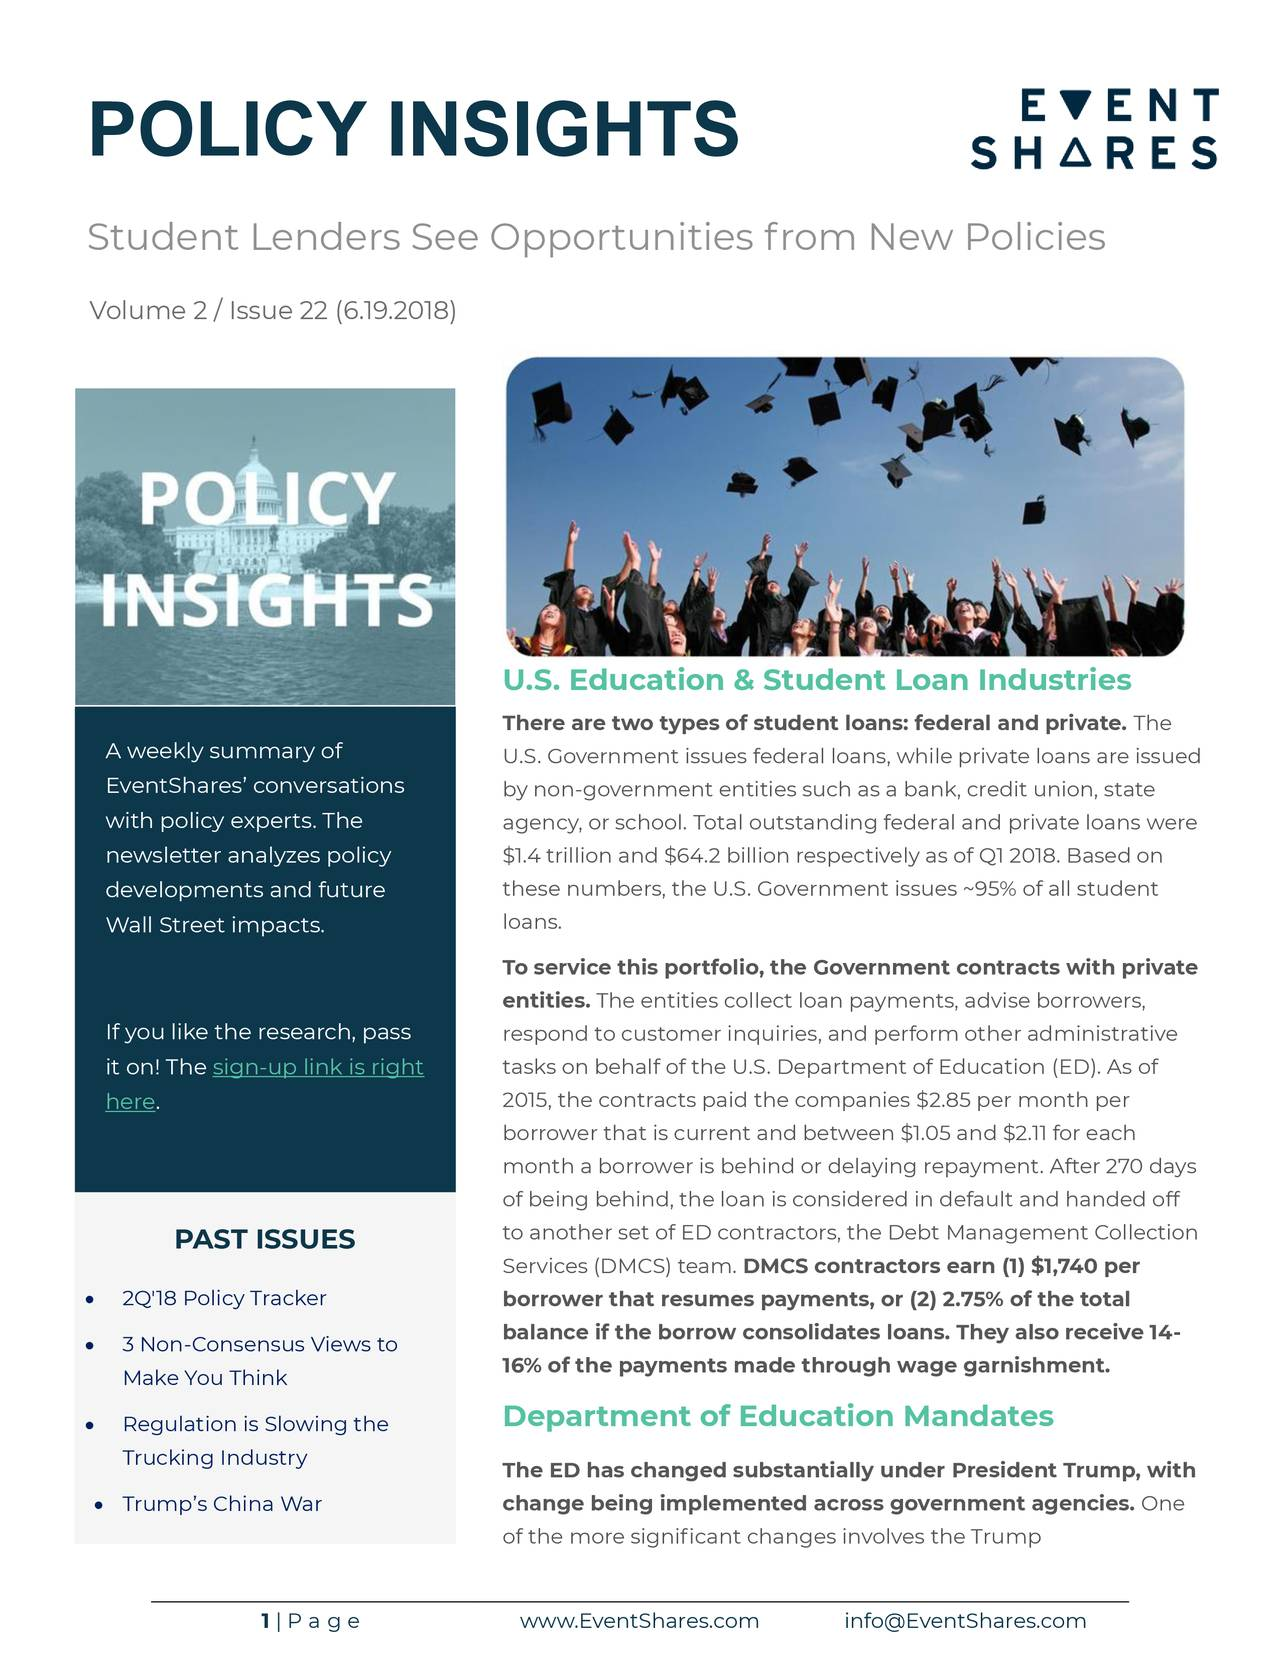 Student Lenders See Opportunities from New Policies Volume 2 / Issue 22 (6.19.2018) U.S. Education & Student Loan Industries There are two types of student loans: federal and private. The A weekly summary of U.S. Government issues federal loans, while private loans are issued EventShares' conversations by non-government entities such as a bank, credit union, state with policy experts. The agency, or school. Total outstanding federal and private loans were newsletter analyzes policy $1.4 trillion and $64.2 billion respectively as of Q1 2018. Based on developments and future these numbers, the U.S. Government issues ~95% of all student Wall Street impacts. loans. To service this portfolio, the Government contracts with private entities. The entities collect loan payments, advise borrowers, If you like the research, pass respond to customer inquiries, and perform other administrative it on! The sign-up link is right tasks on behalf of the U.S. Department of Education (ED). As of 2015, the contracts paid the companies $2.85 per month per here. borrower that is current and between $1.05 and $2.11 for each month a borrower is behind or delaying repayment. After 270 days of being behind, the loan is considered in default and handed off PAST ISSUES to another set of ED contractors, the Debt Management Collection Services (DMCS) team. DMCS contractors earn (1) $1,740 per • 2Q'18 Policy Tracker borrower that resumes payments, or (2) 2.75% of the total balance if the borrow consolidates loans. They also receive 14- • 3 Non-Consensus Views to Make You Think 16% of the payments made through wage garnishment. Department of Education Mandates • Regulation is Slowing the Trucking Industry The ED has changed substantially under President Trump, with • Trump's China War change being implemented across government agencies. One of the more significant changes involves the Trump 1 | P a g e www.EventShares.com info@EventShares.com